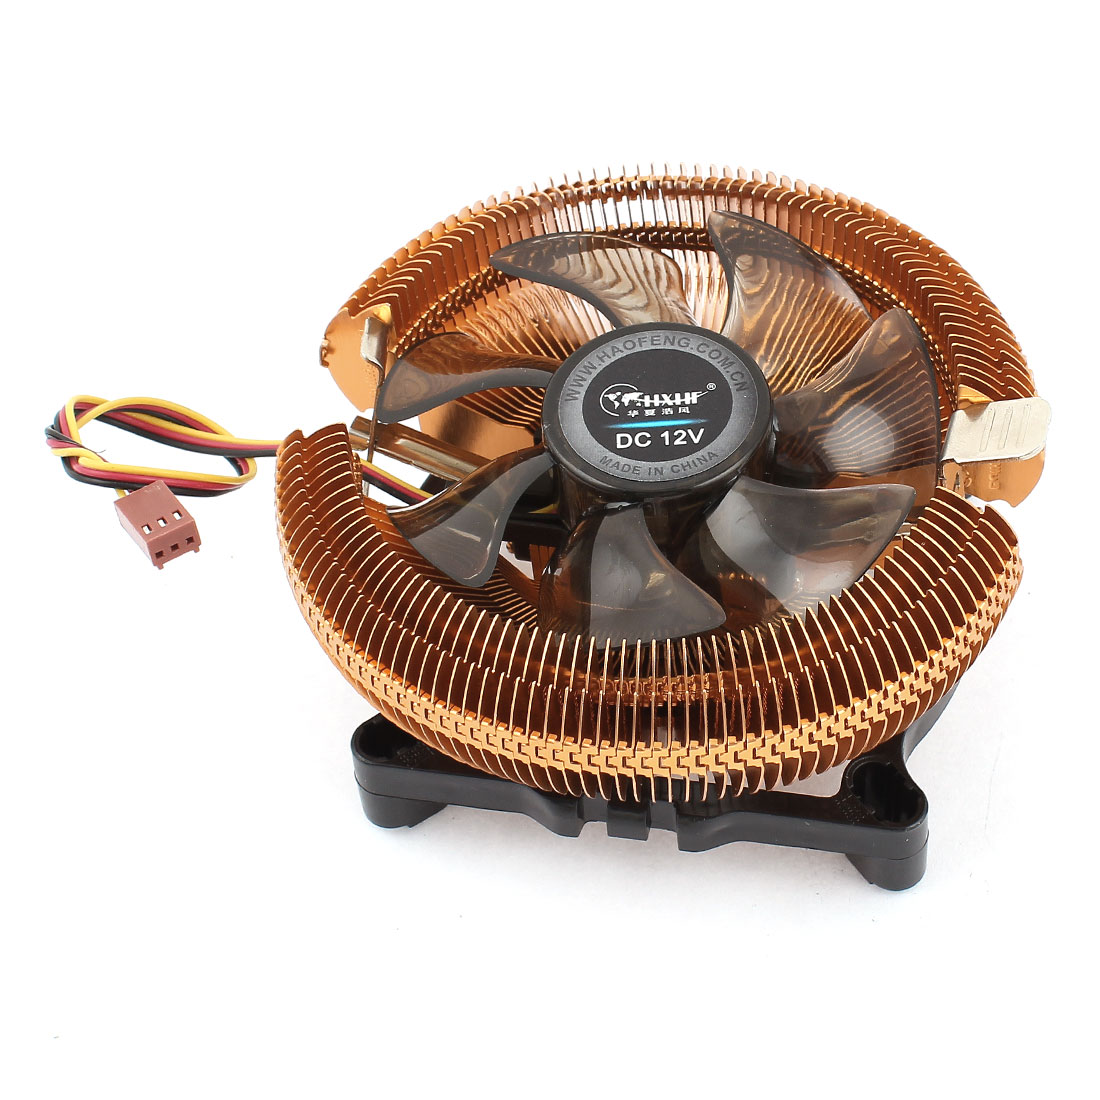 DC 12V 0.15A 52.3CFM 3Pins Connector CPU Cooler Cooling Fan Heatsink for LGA 775